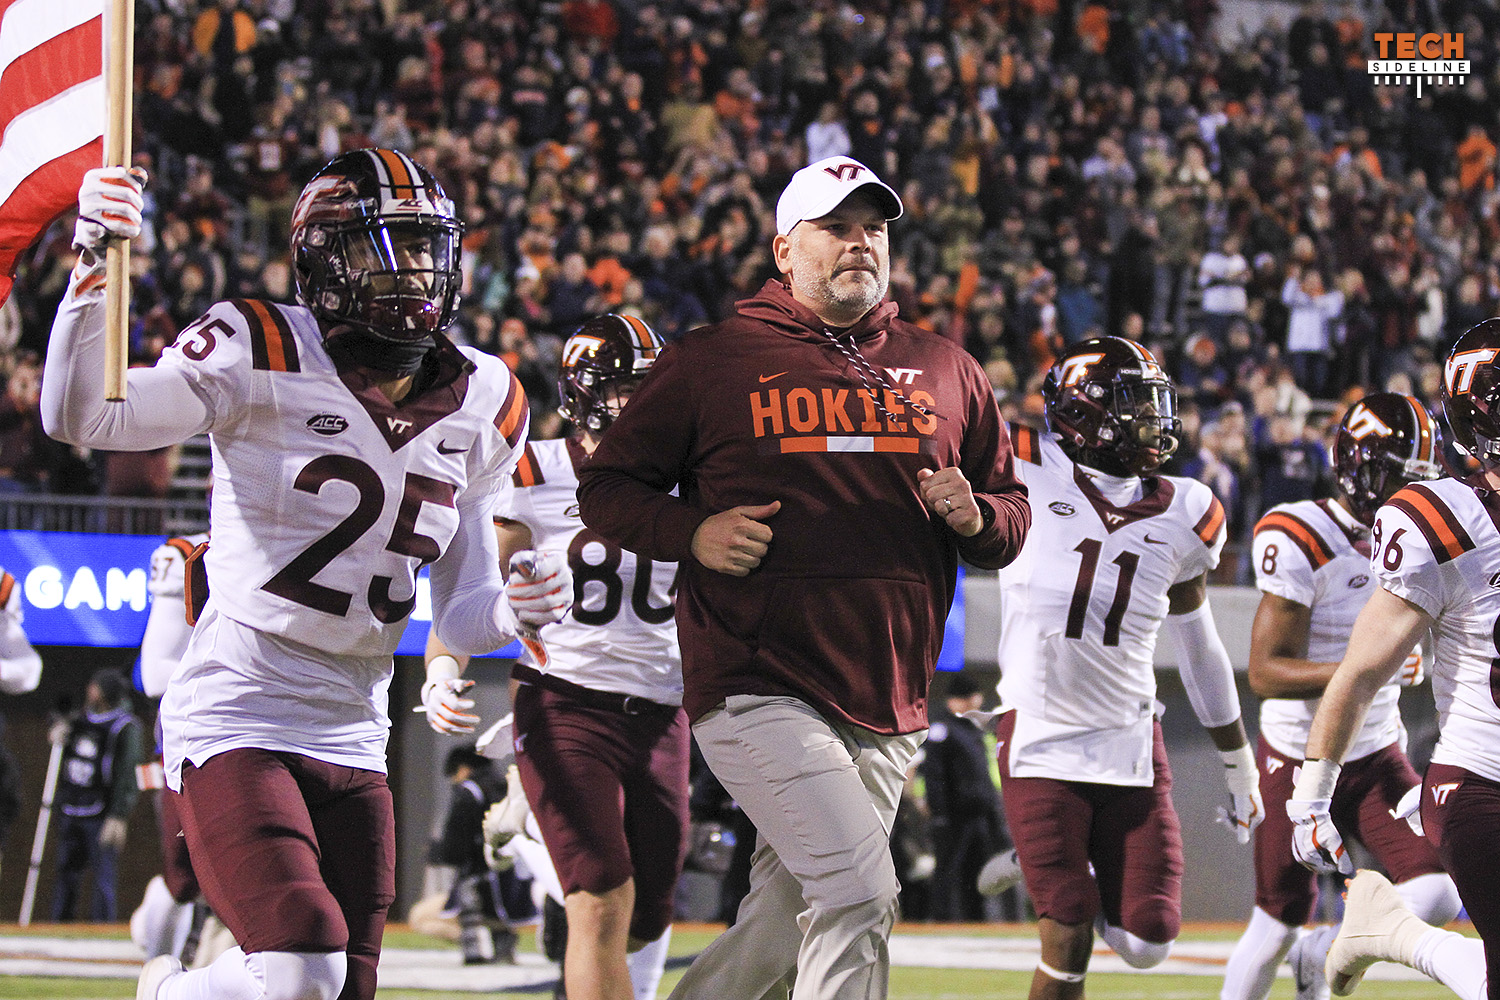 Oklahoma State to face Virginia Tech in Camping World Bowl